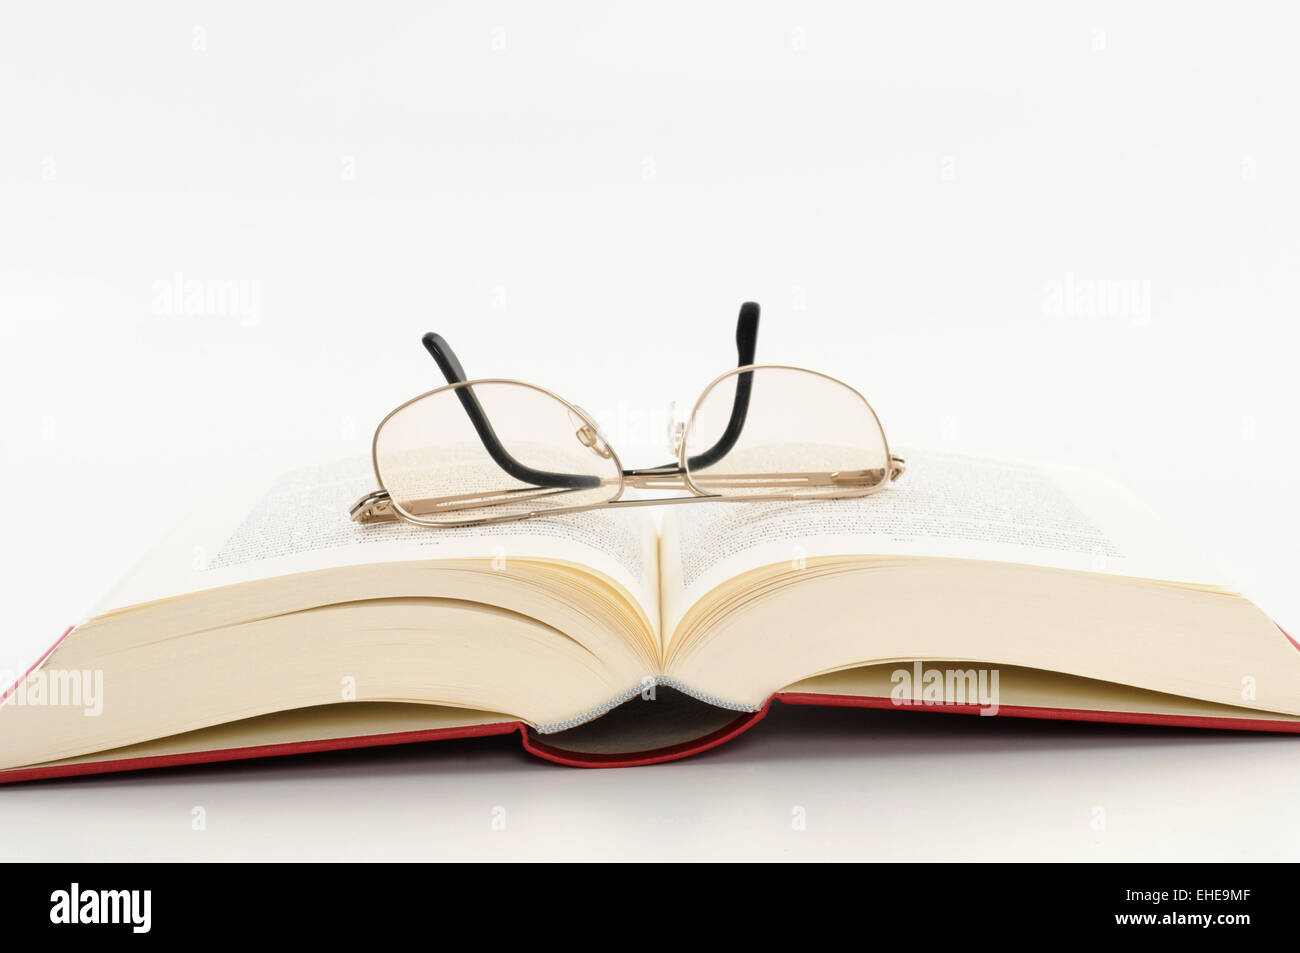 Buch / Book - Stock Image